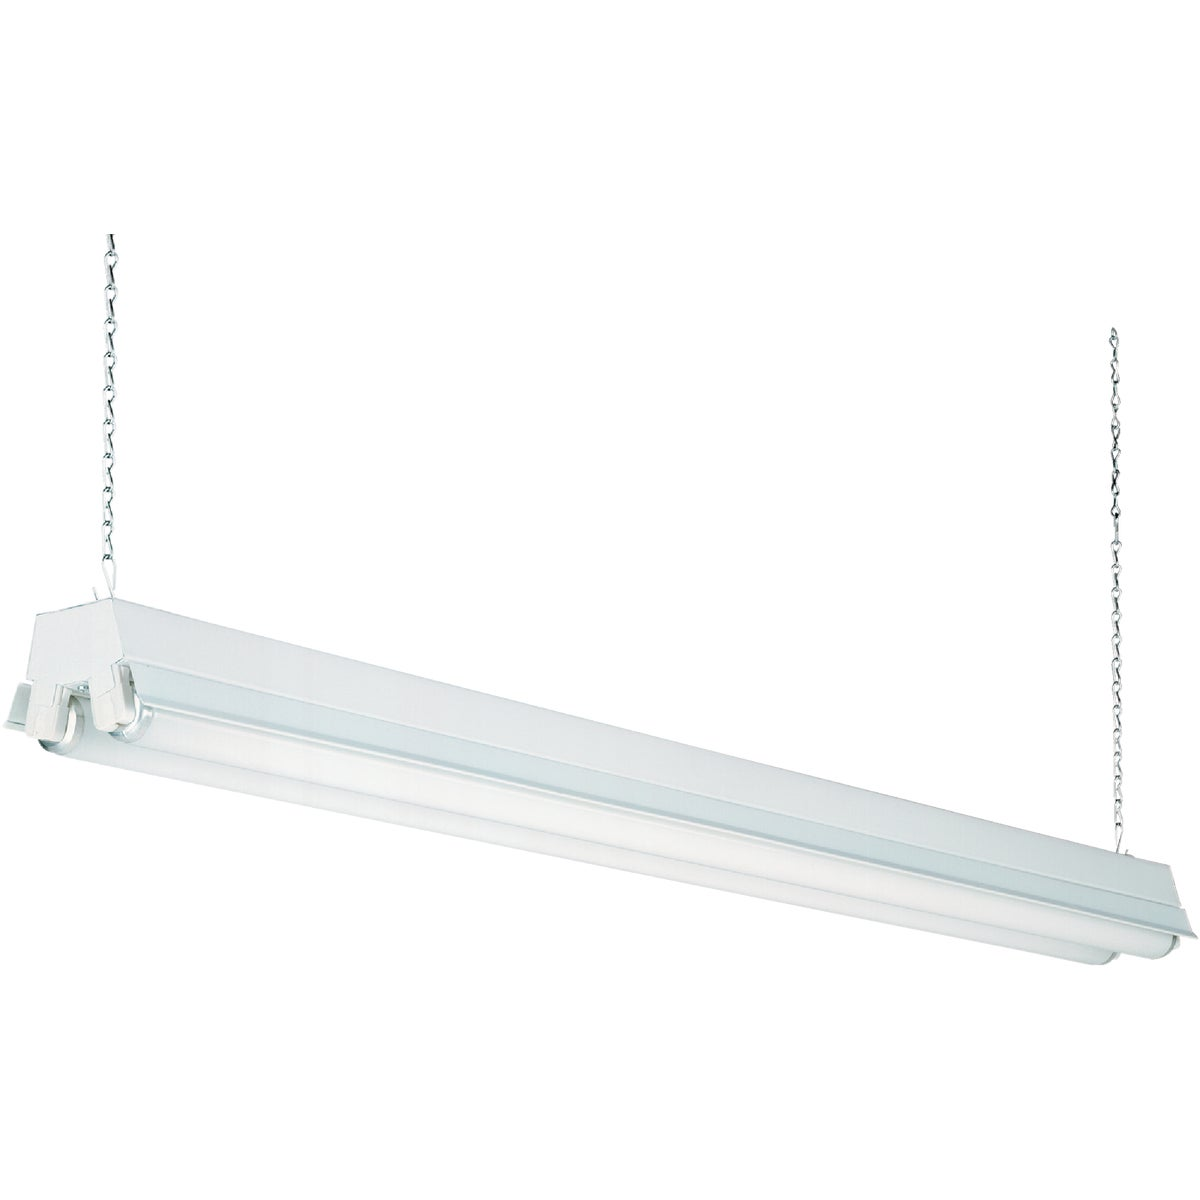 4' T12 2BULB SHOPLIGHT - 1233 by Lithonia Lighting